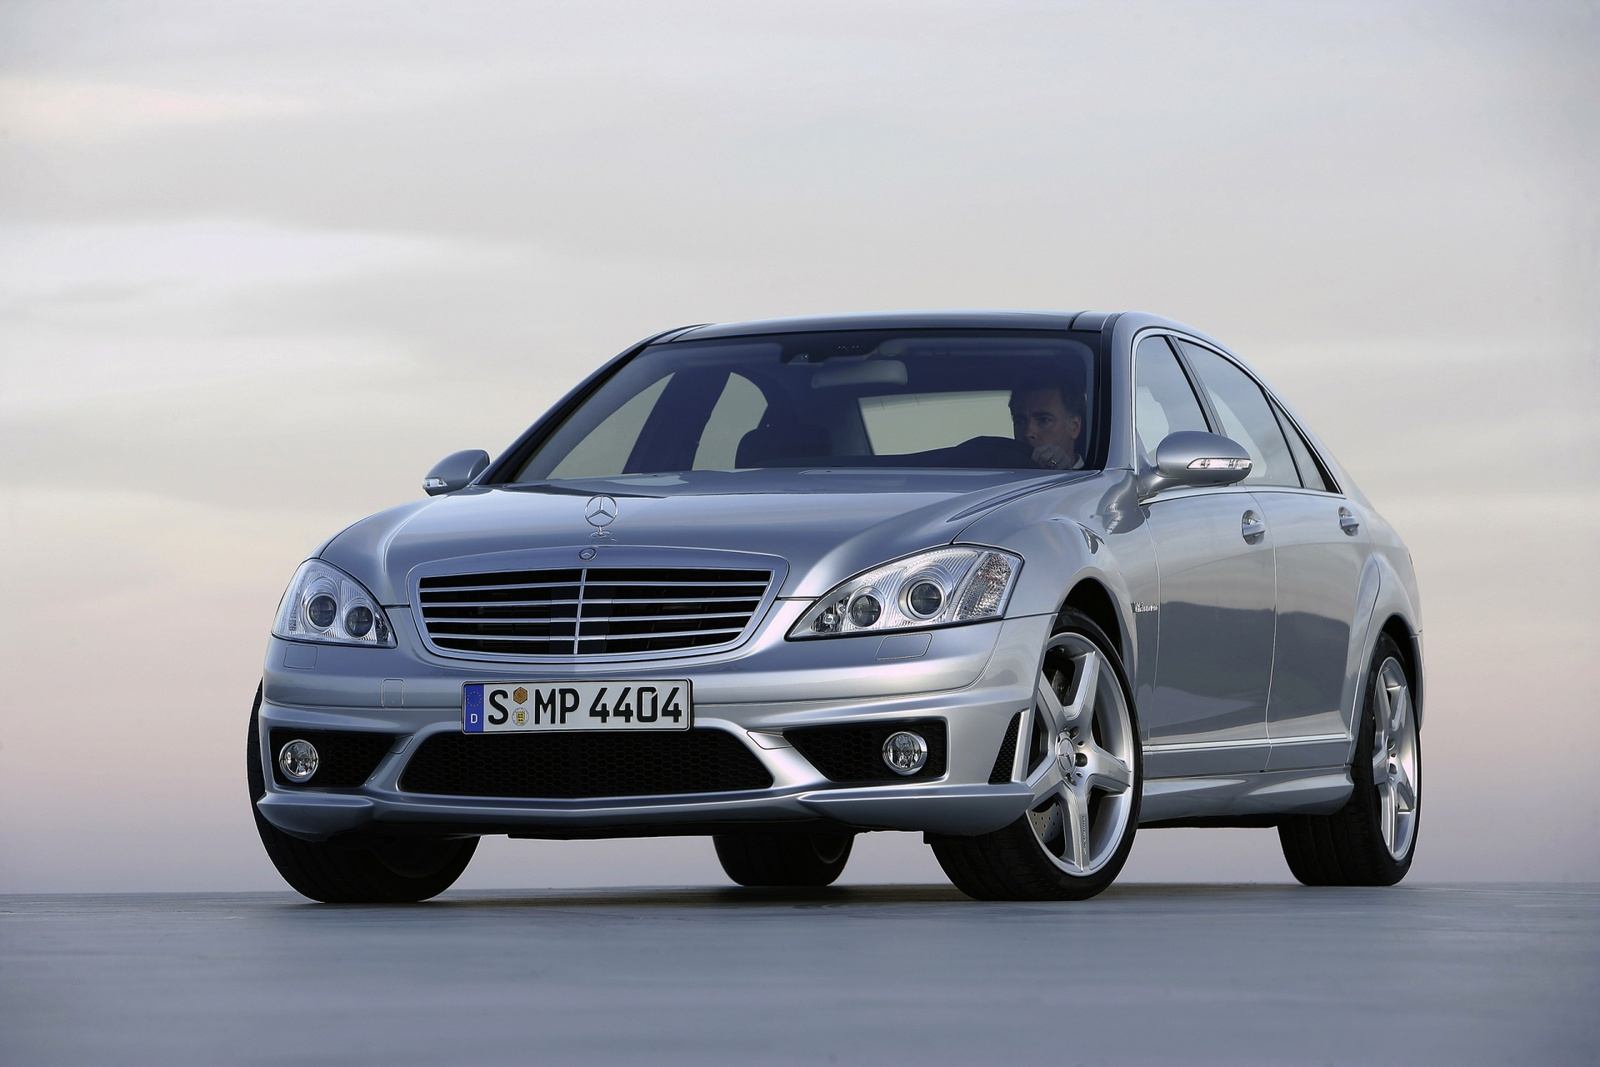 2008 mercedes benz s class pictures cargurus. Black Bedroom Furniture Sets. Home Design Ideas